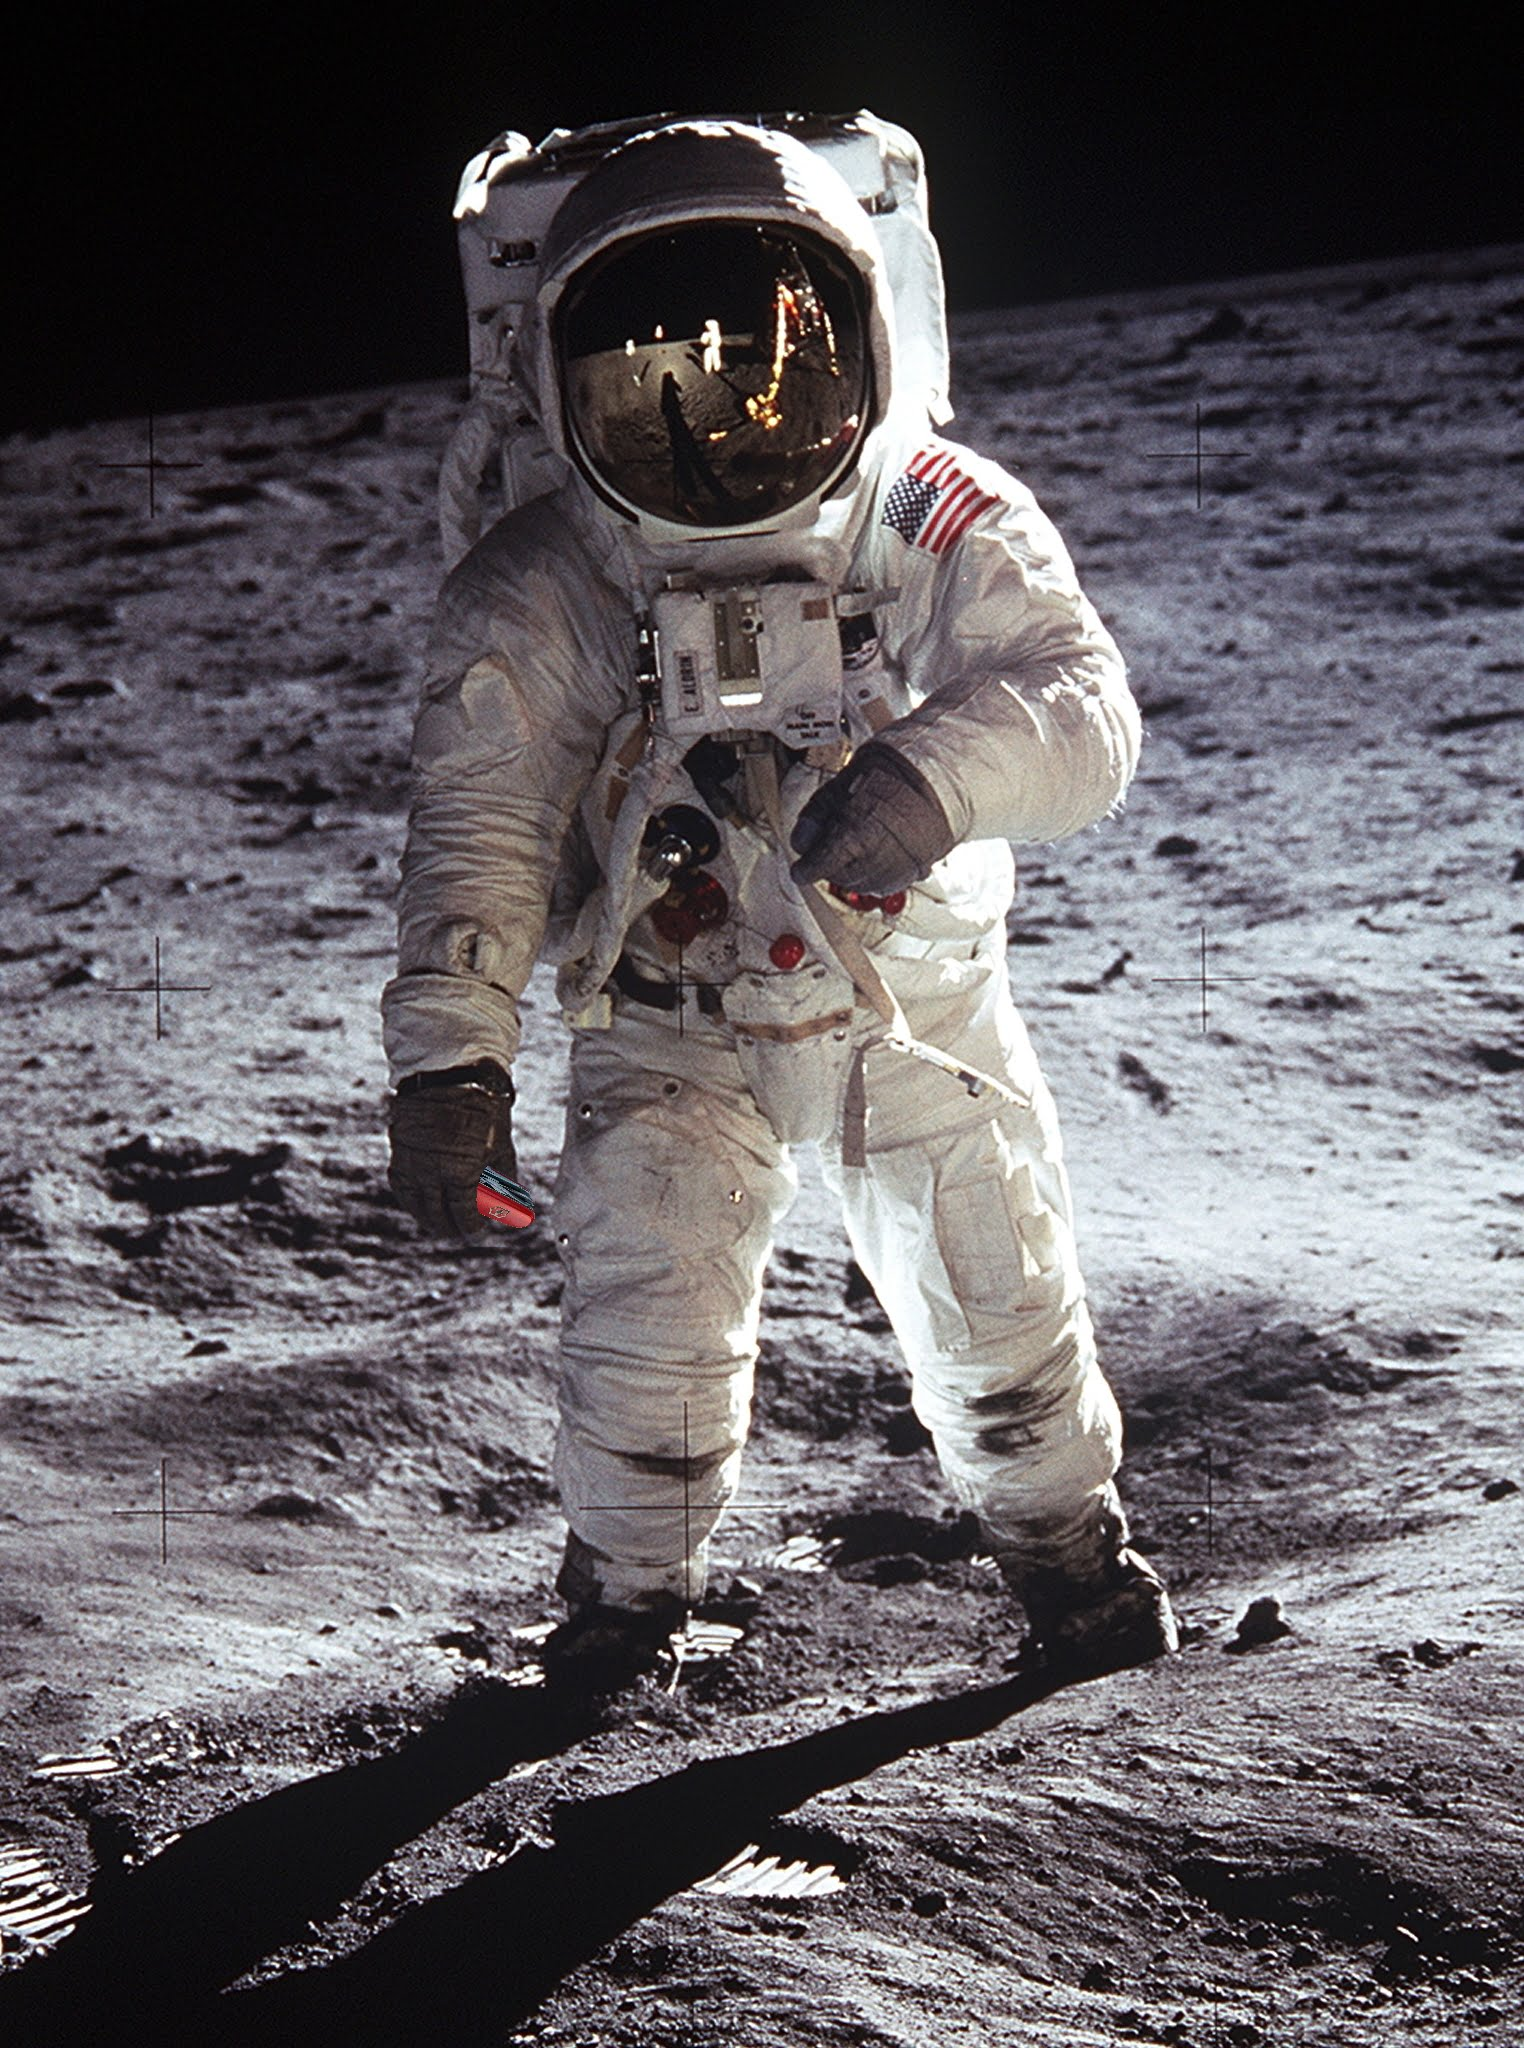 Aldrin on the moon during the Apollo 11 mission